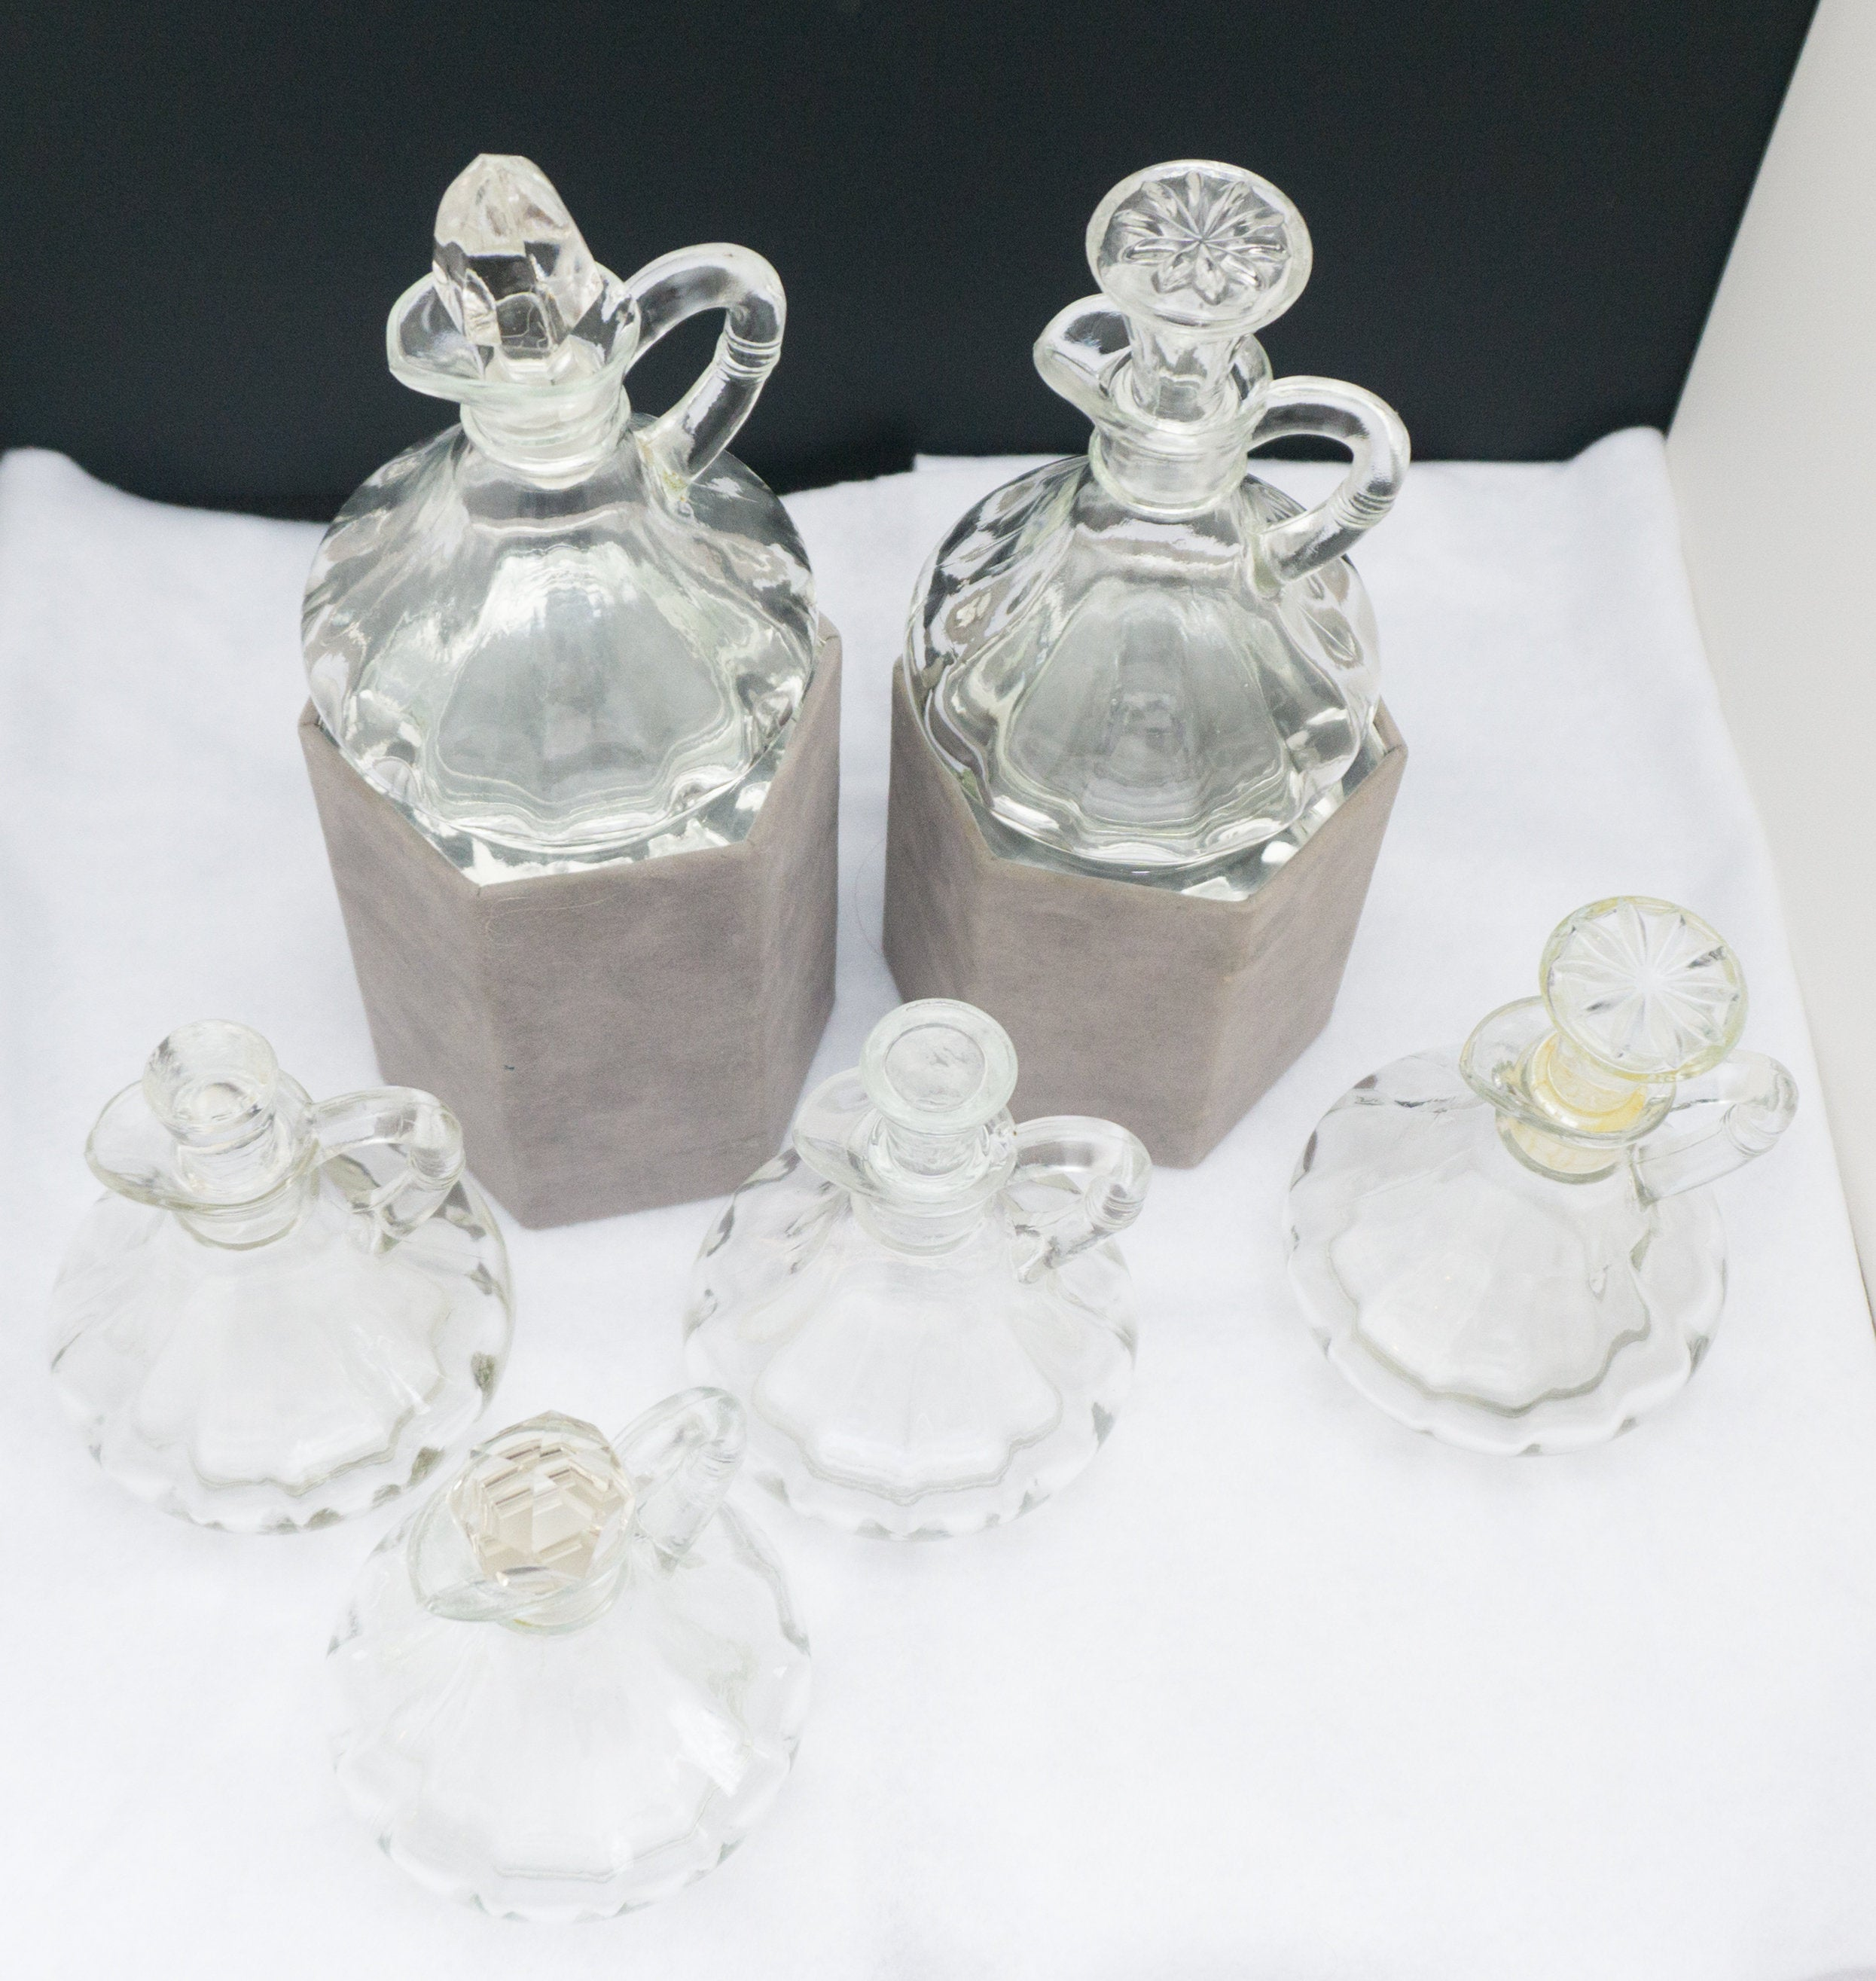 SIX Vintage Glass Cruet Olive Oil Dispenser Pitcher with Stoppers